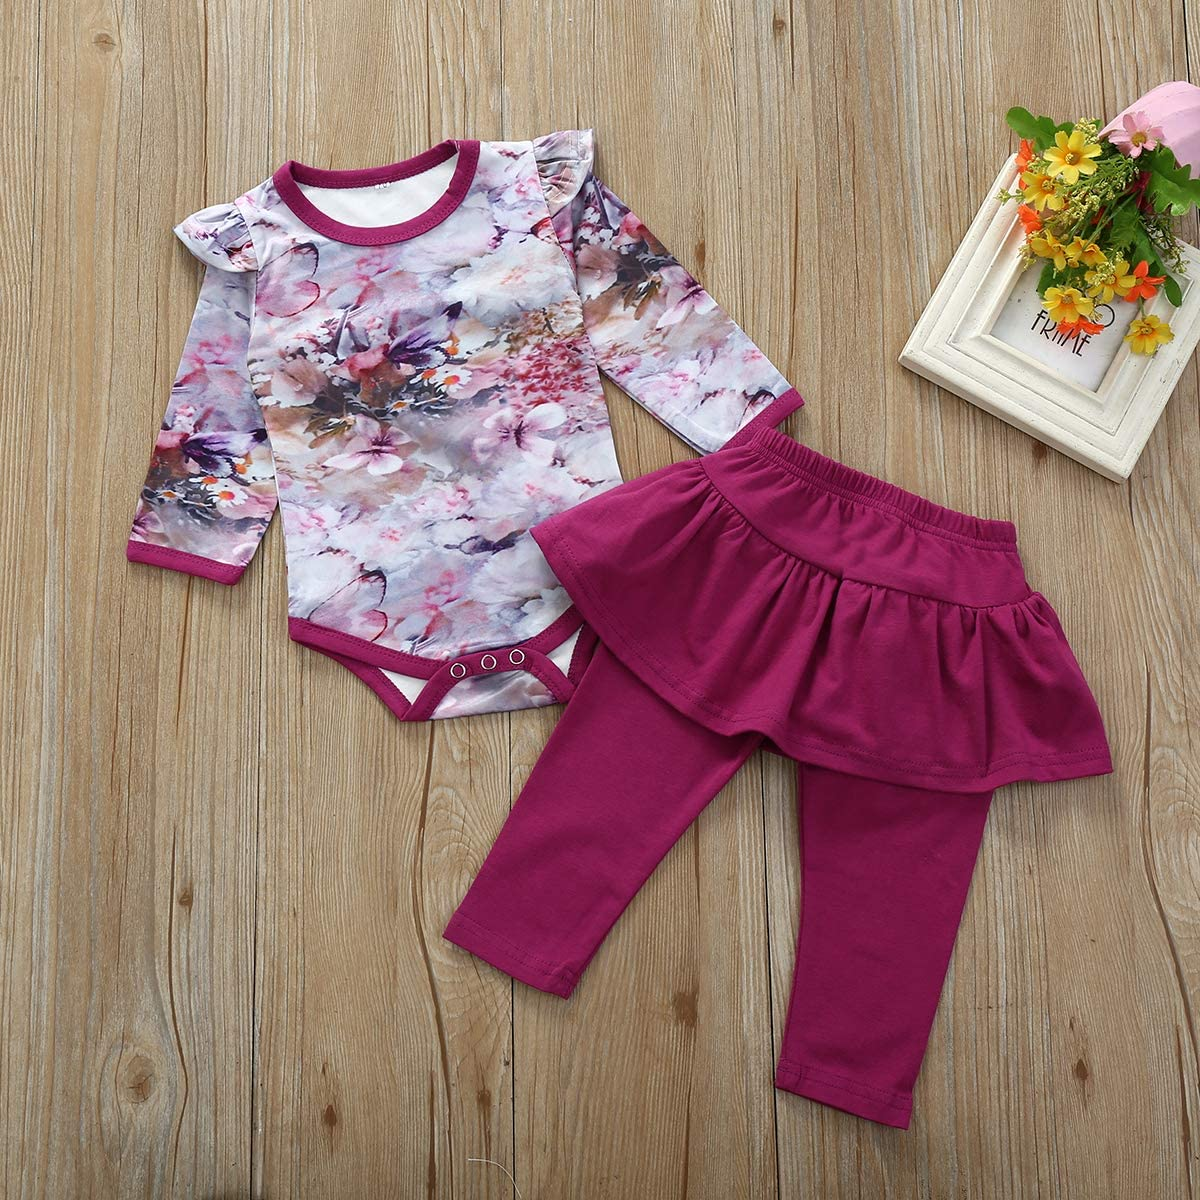 Mubineo Baby and Toddler Girl Spring Summer Floral Printed Comfy Cotton Linen Casual Pants